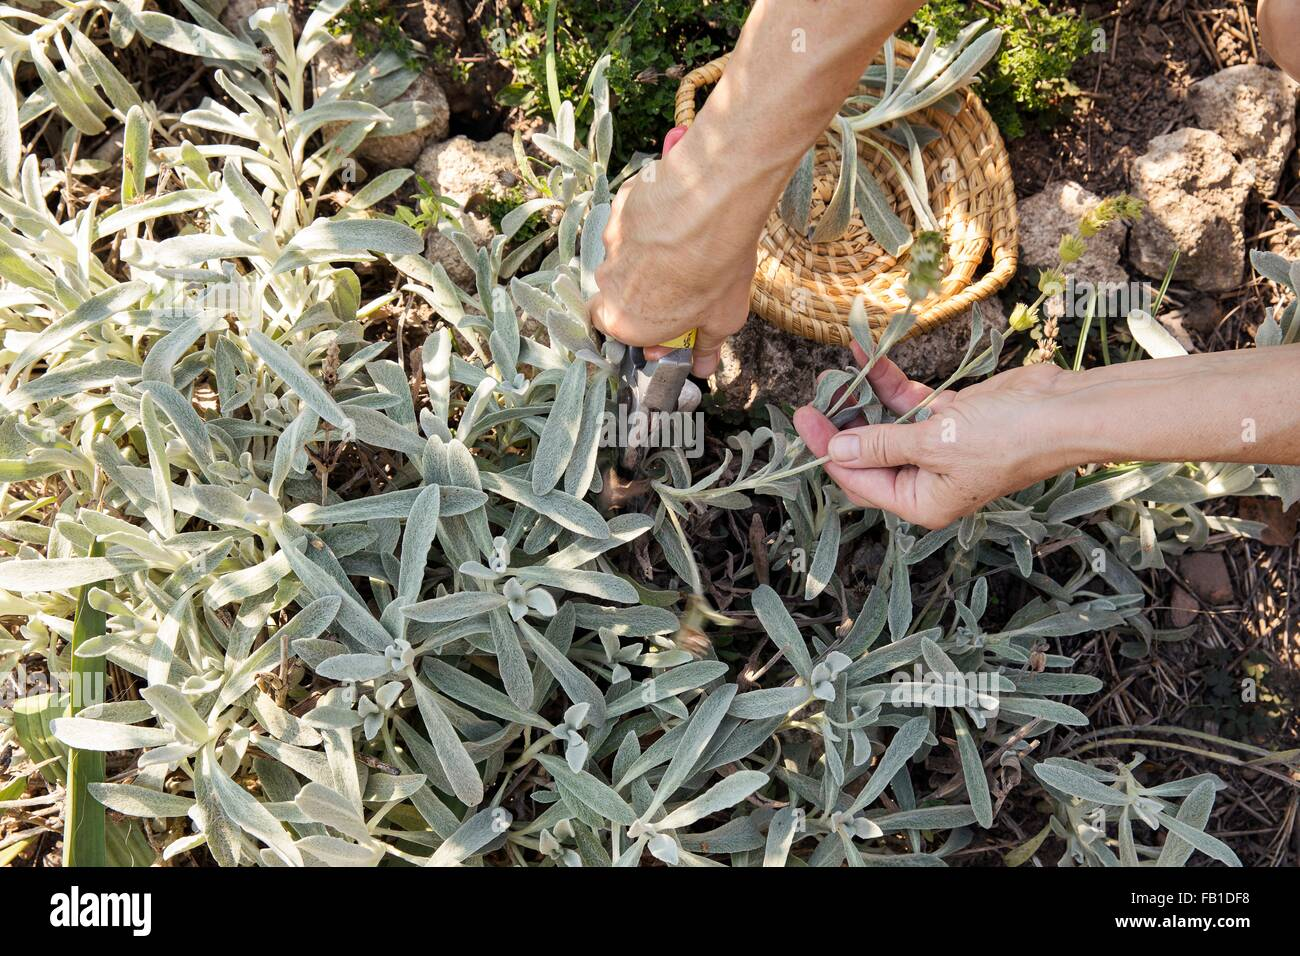 Mature woman gardening, cutting plant with secateurs, low section - Stock Image